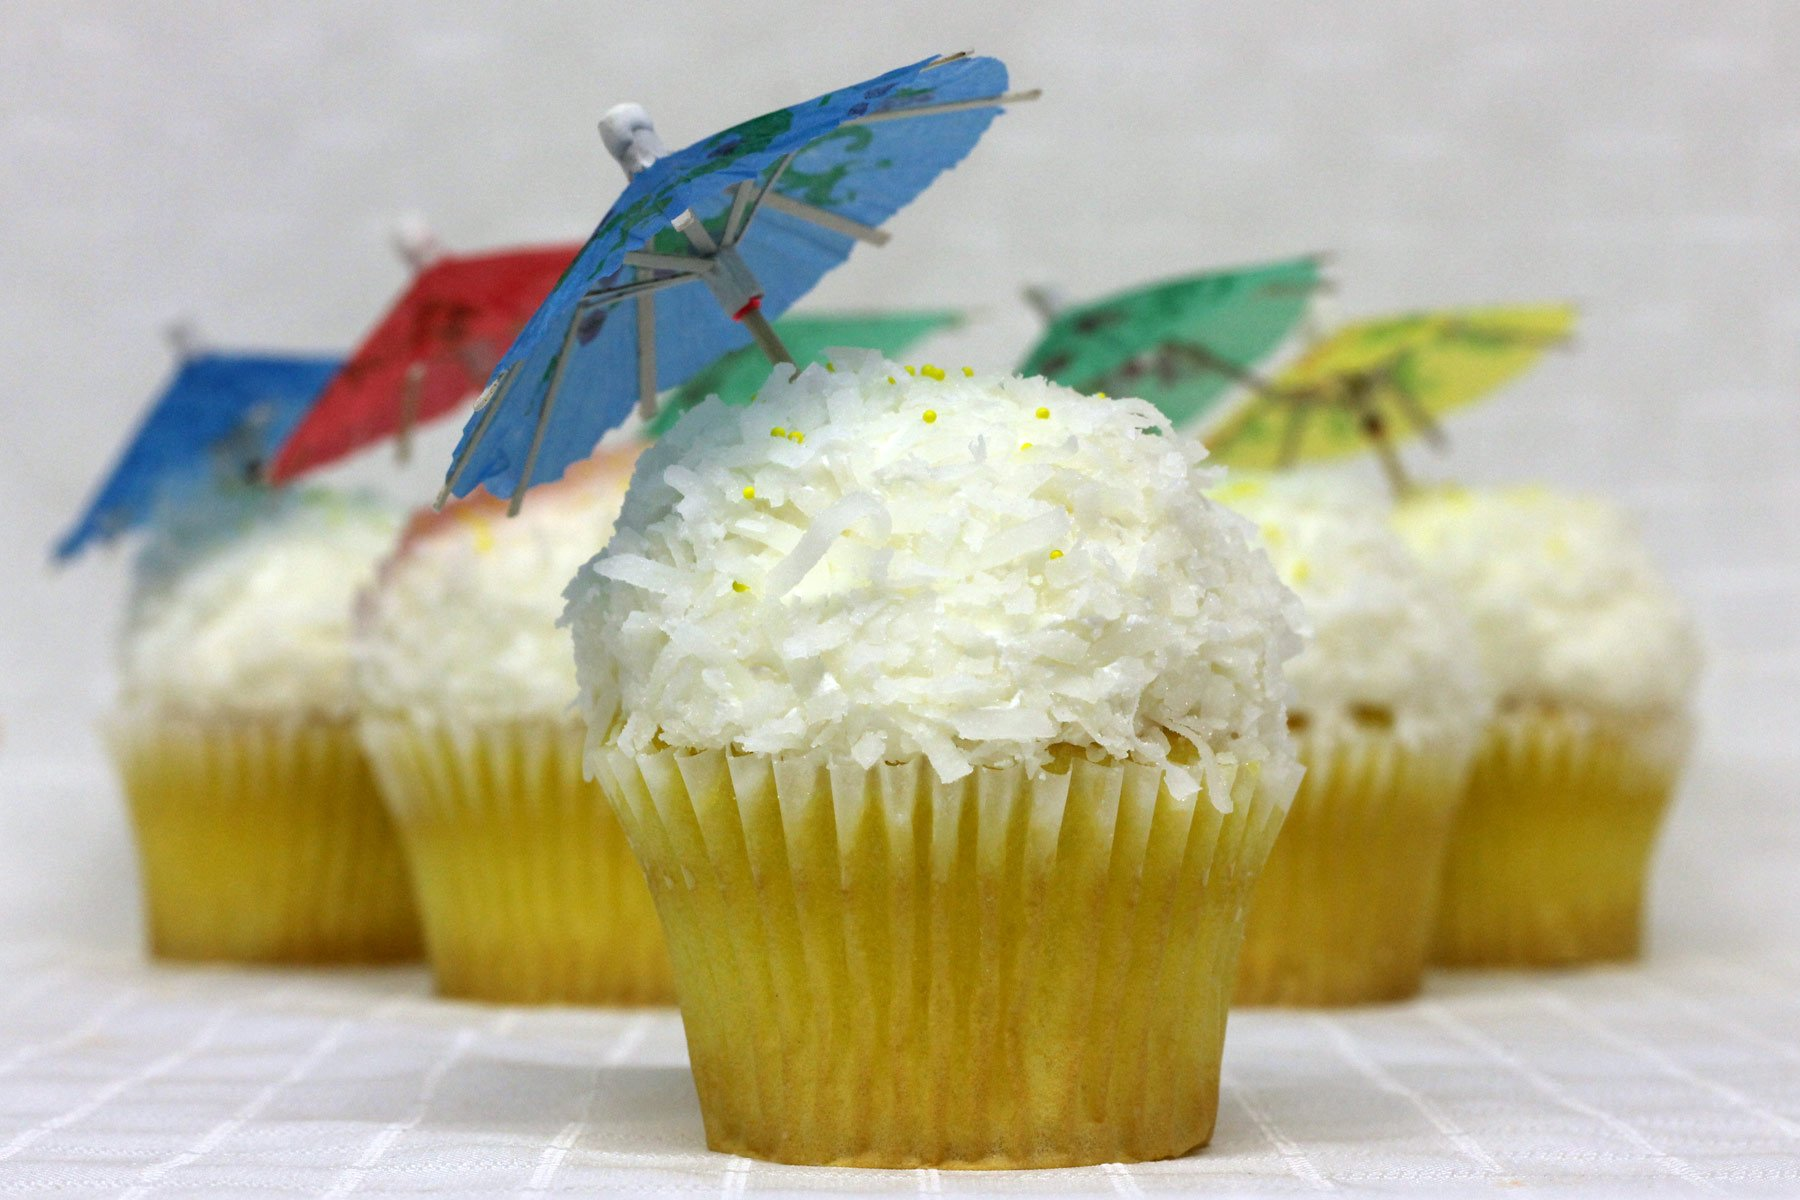 Reviews of cakes, wedding cakes, cupcakes, and customer service